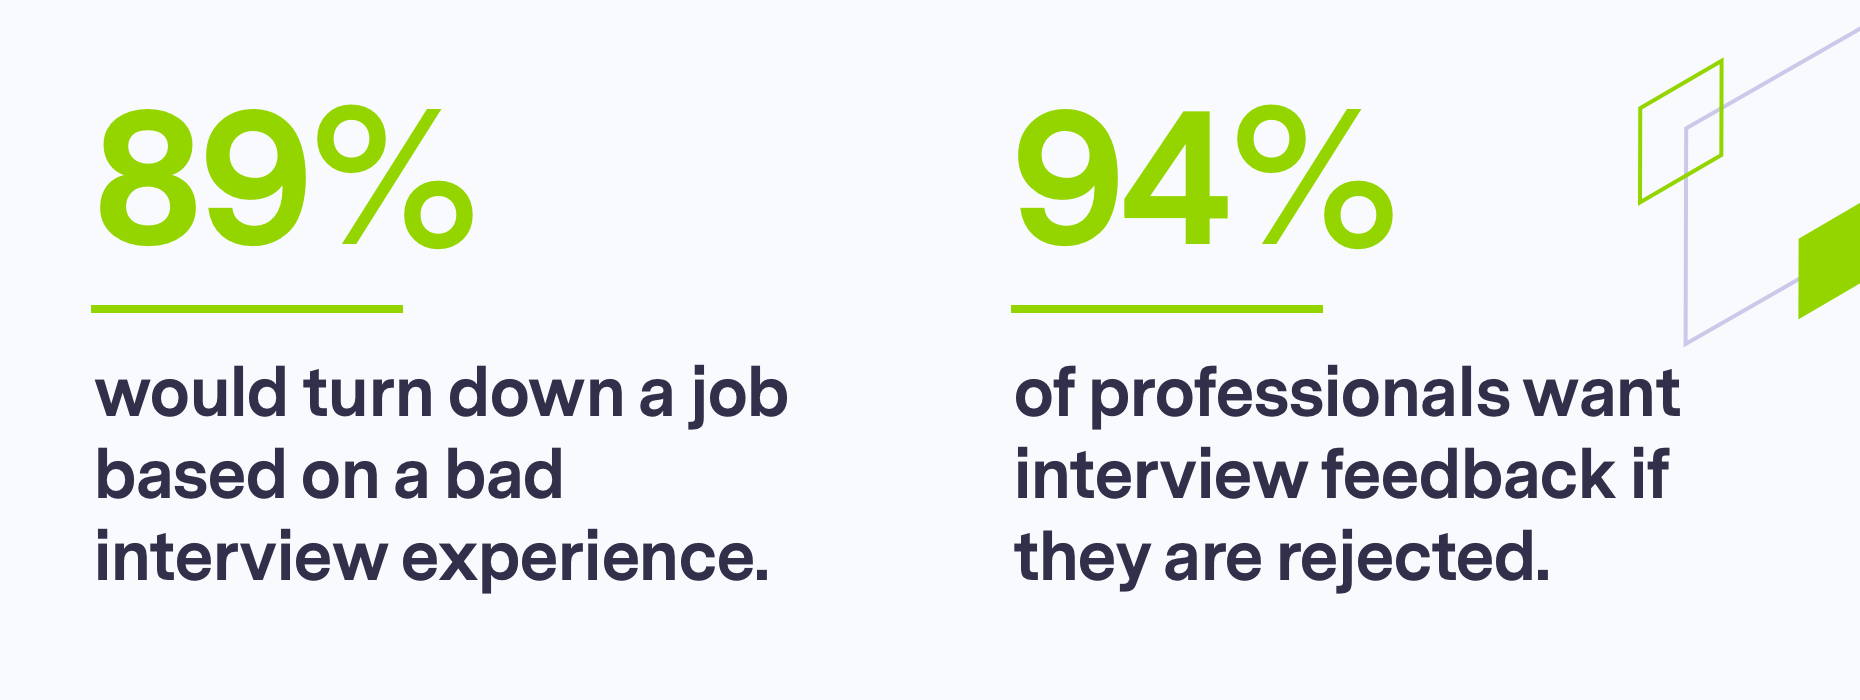 Stats on candidate experience